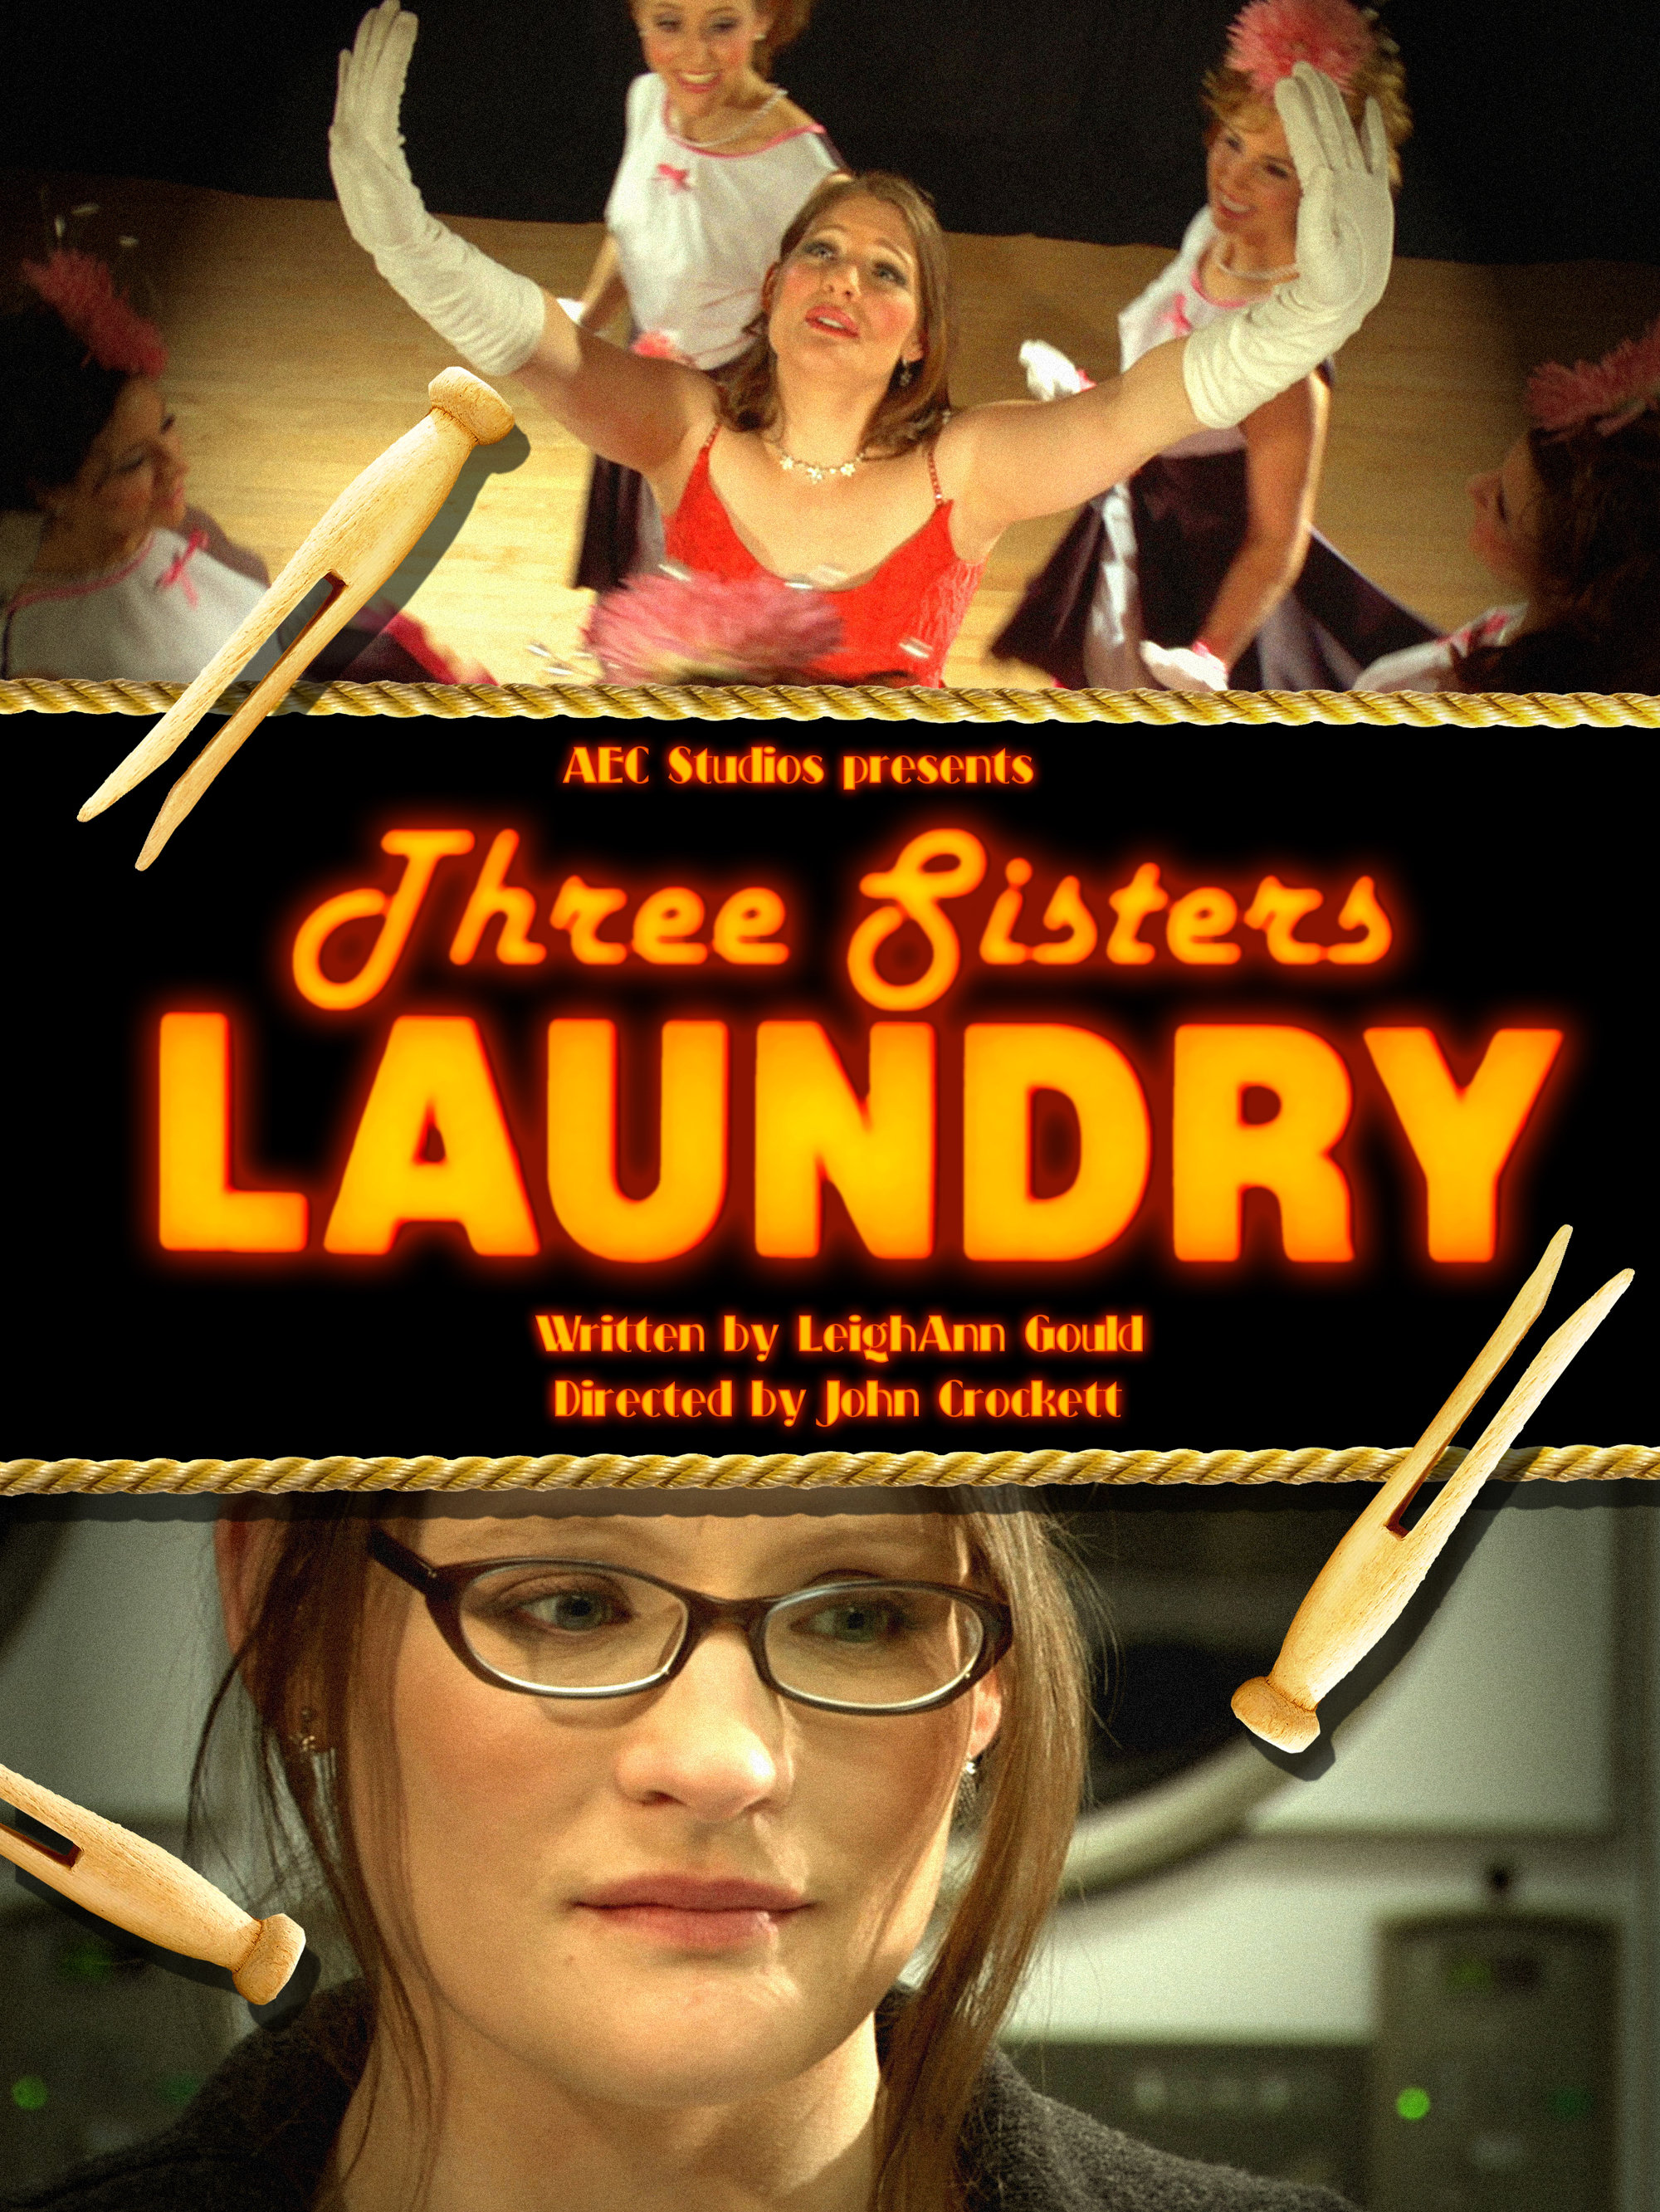 image Three Sister's Laundry Watch Full Movie Free Online